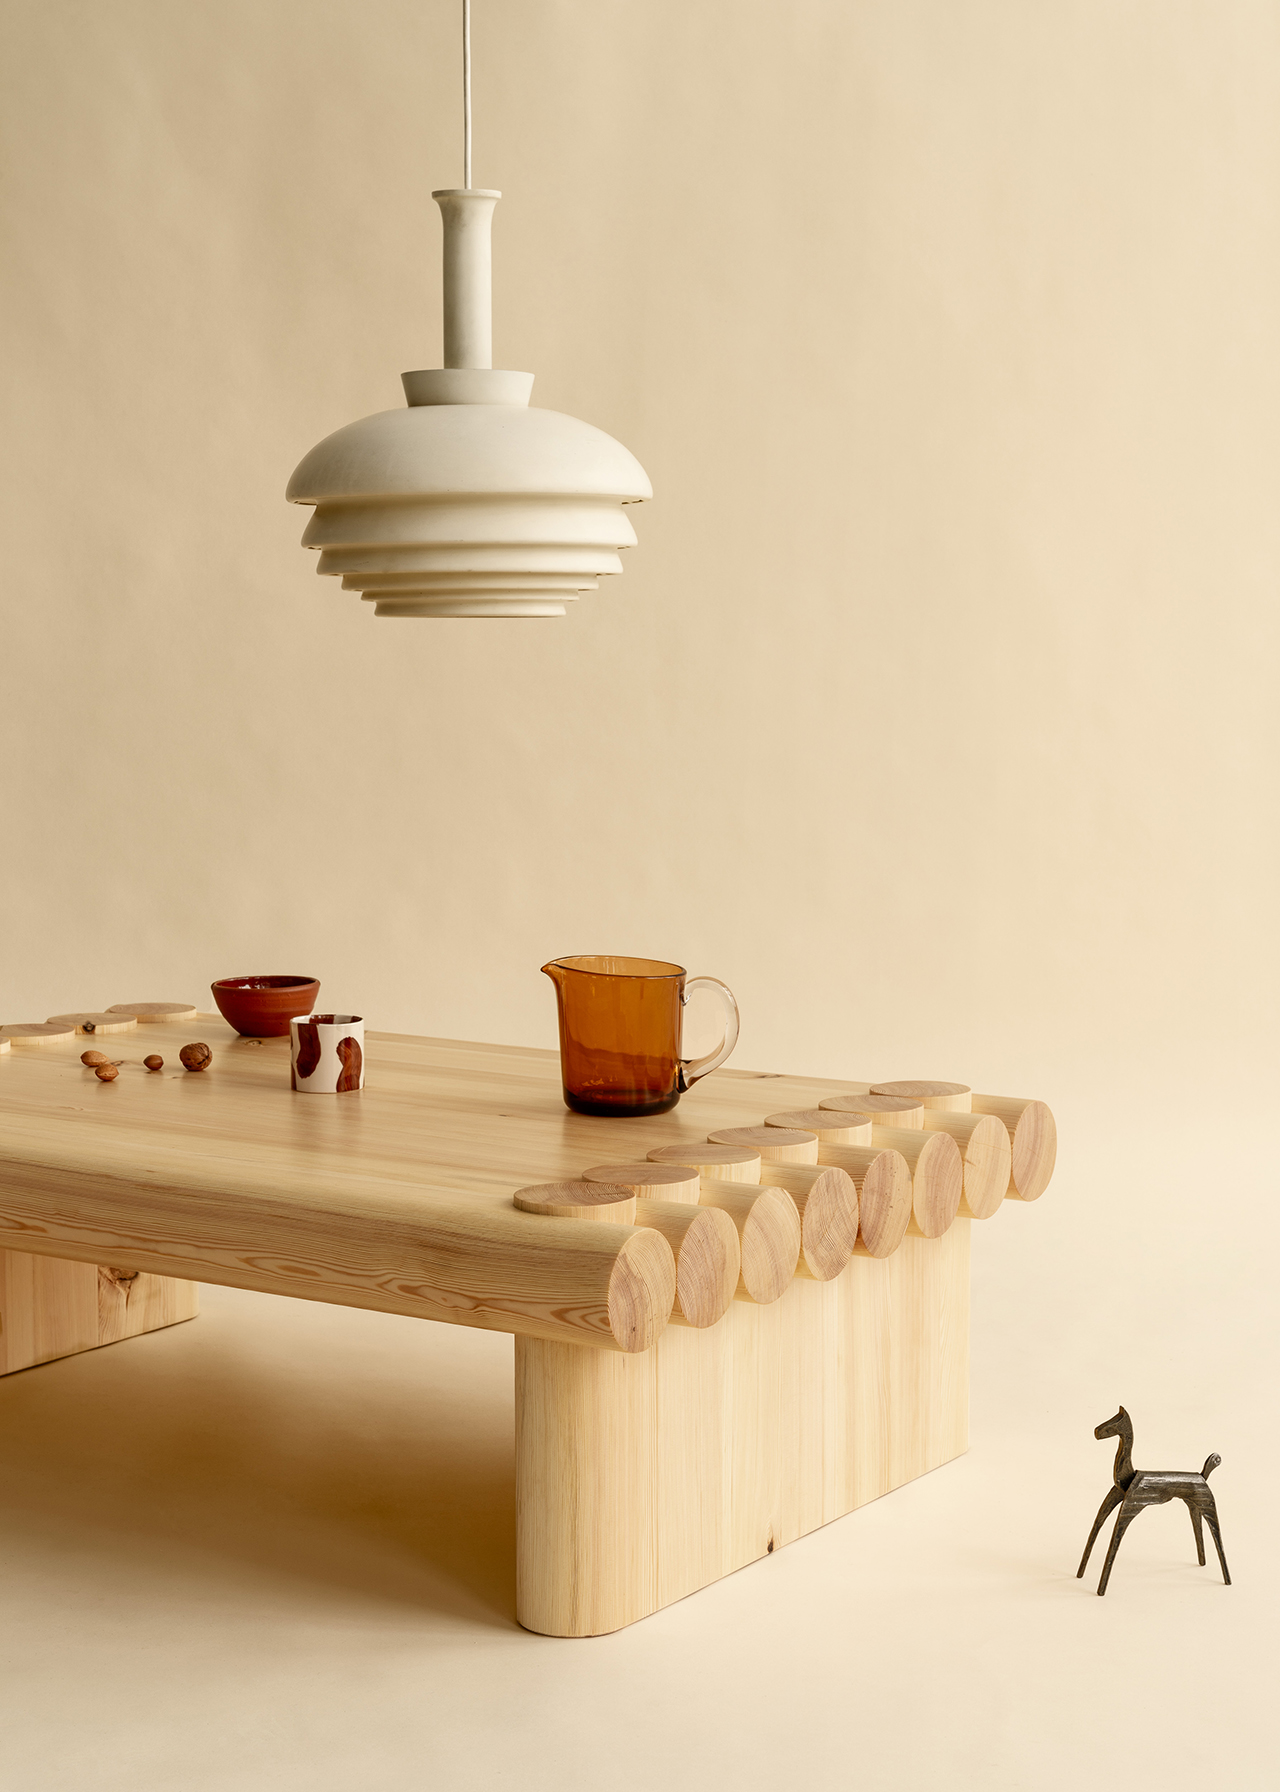 coffee table and light fixture